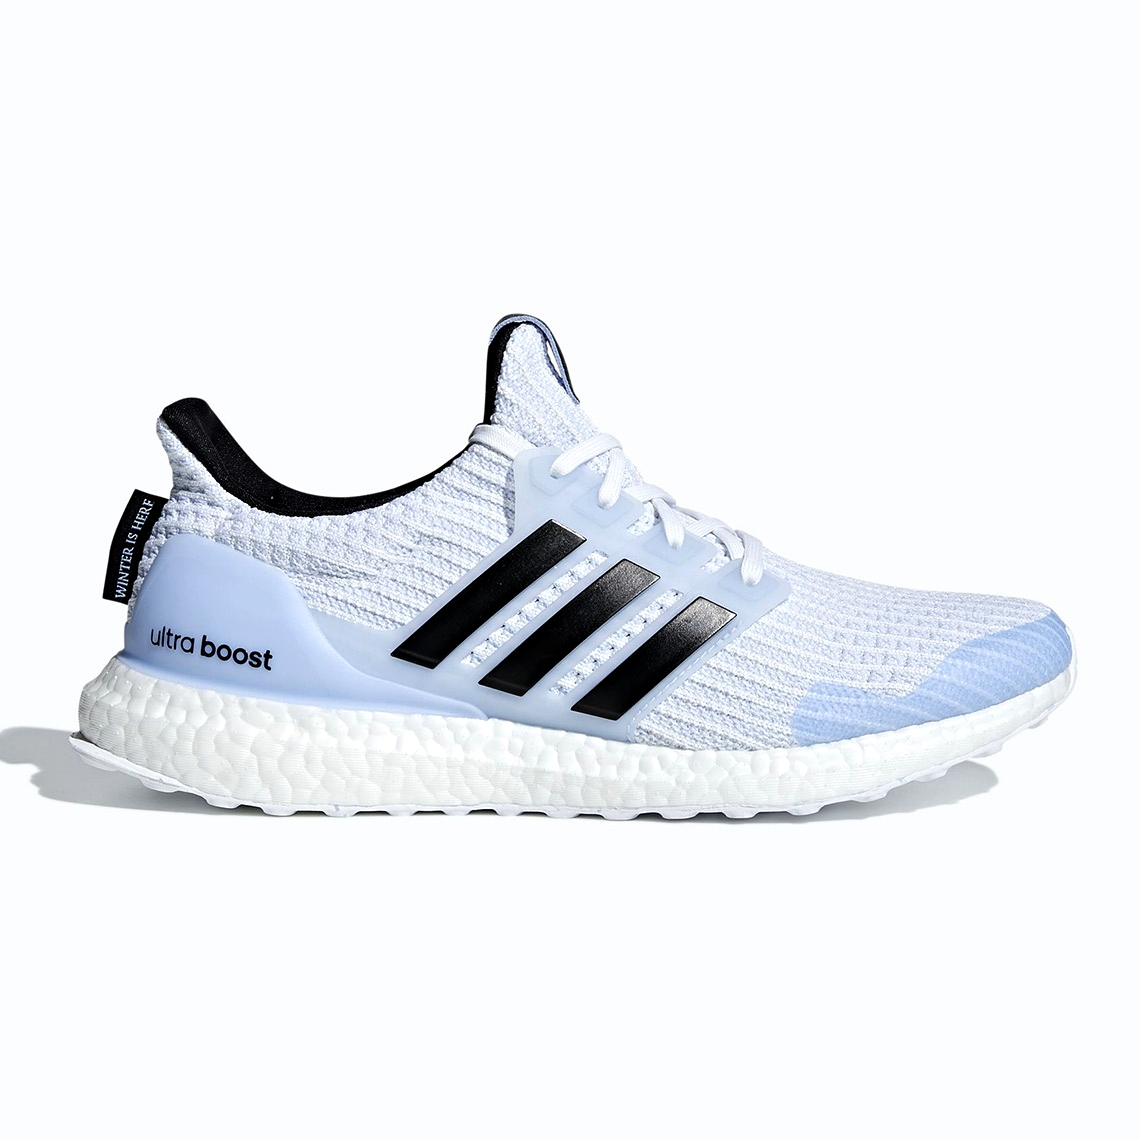 Game Of Thrones x adidas UltraBOOST «White Walker»